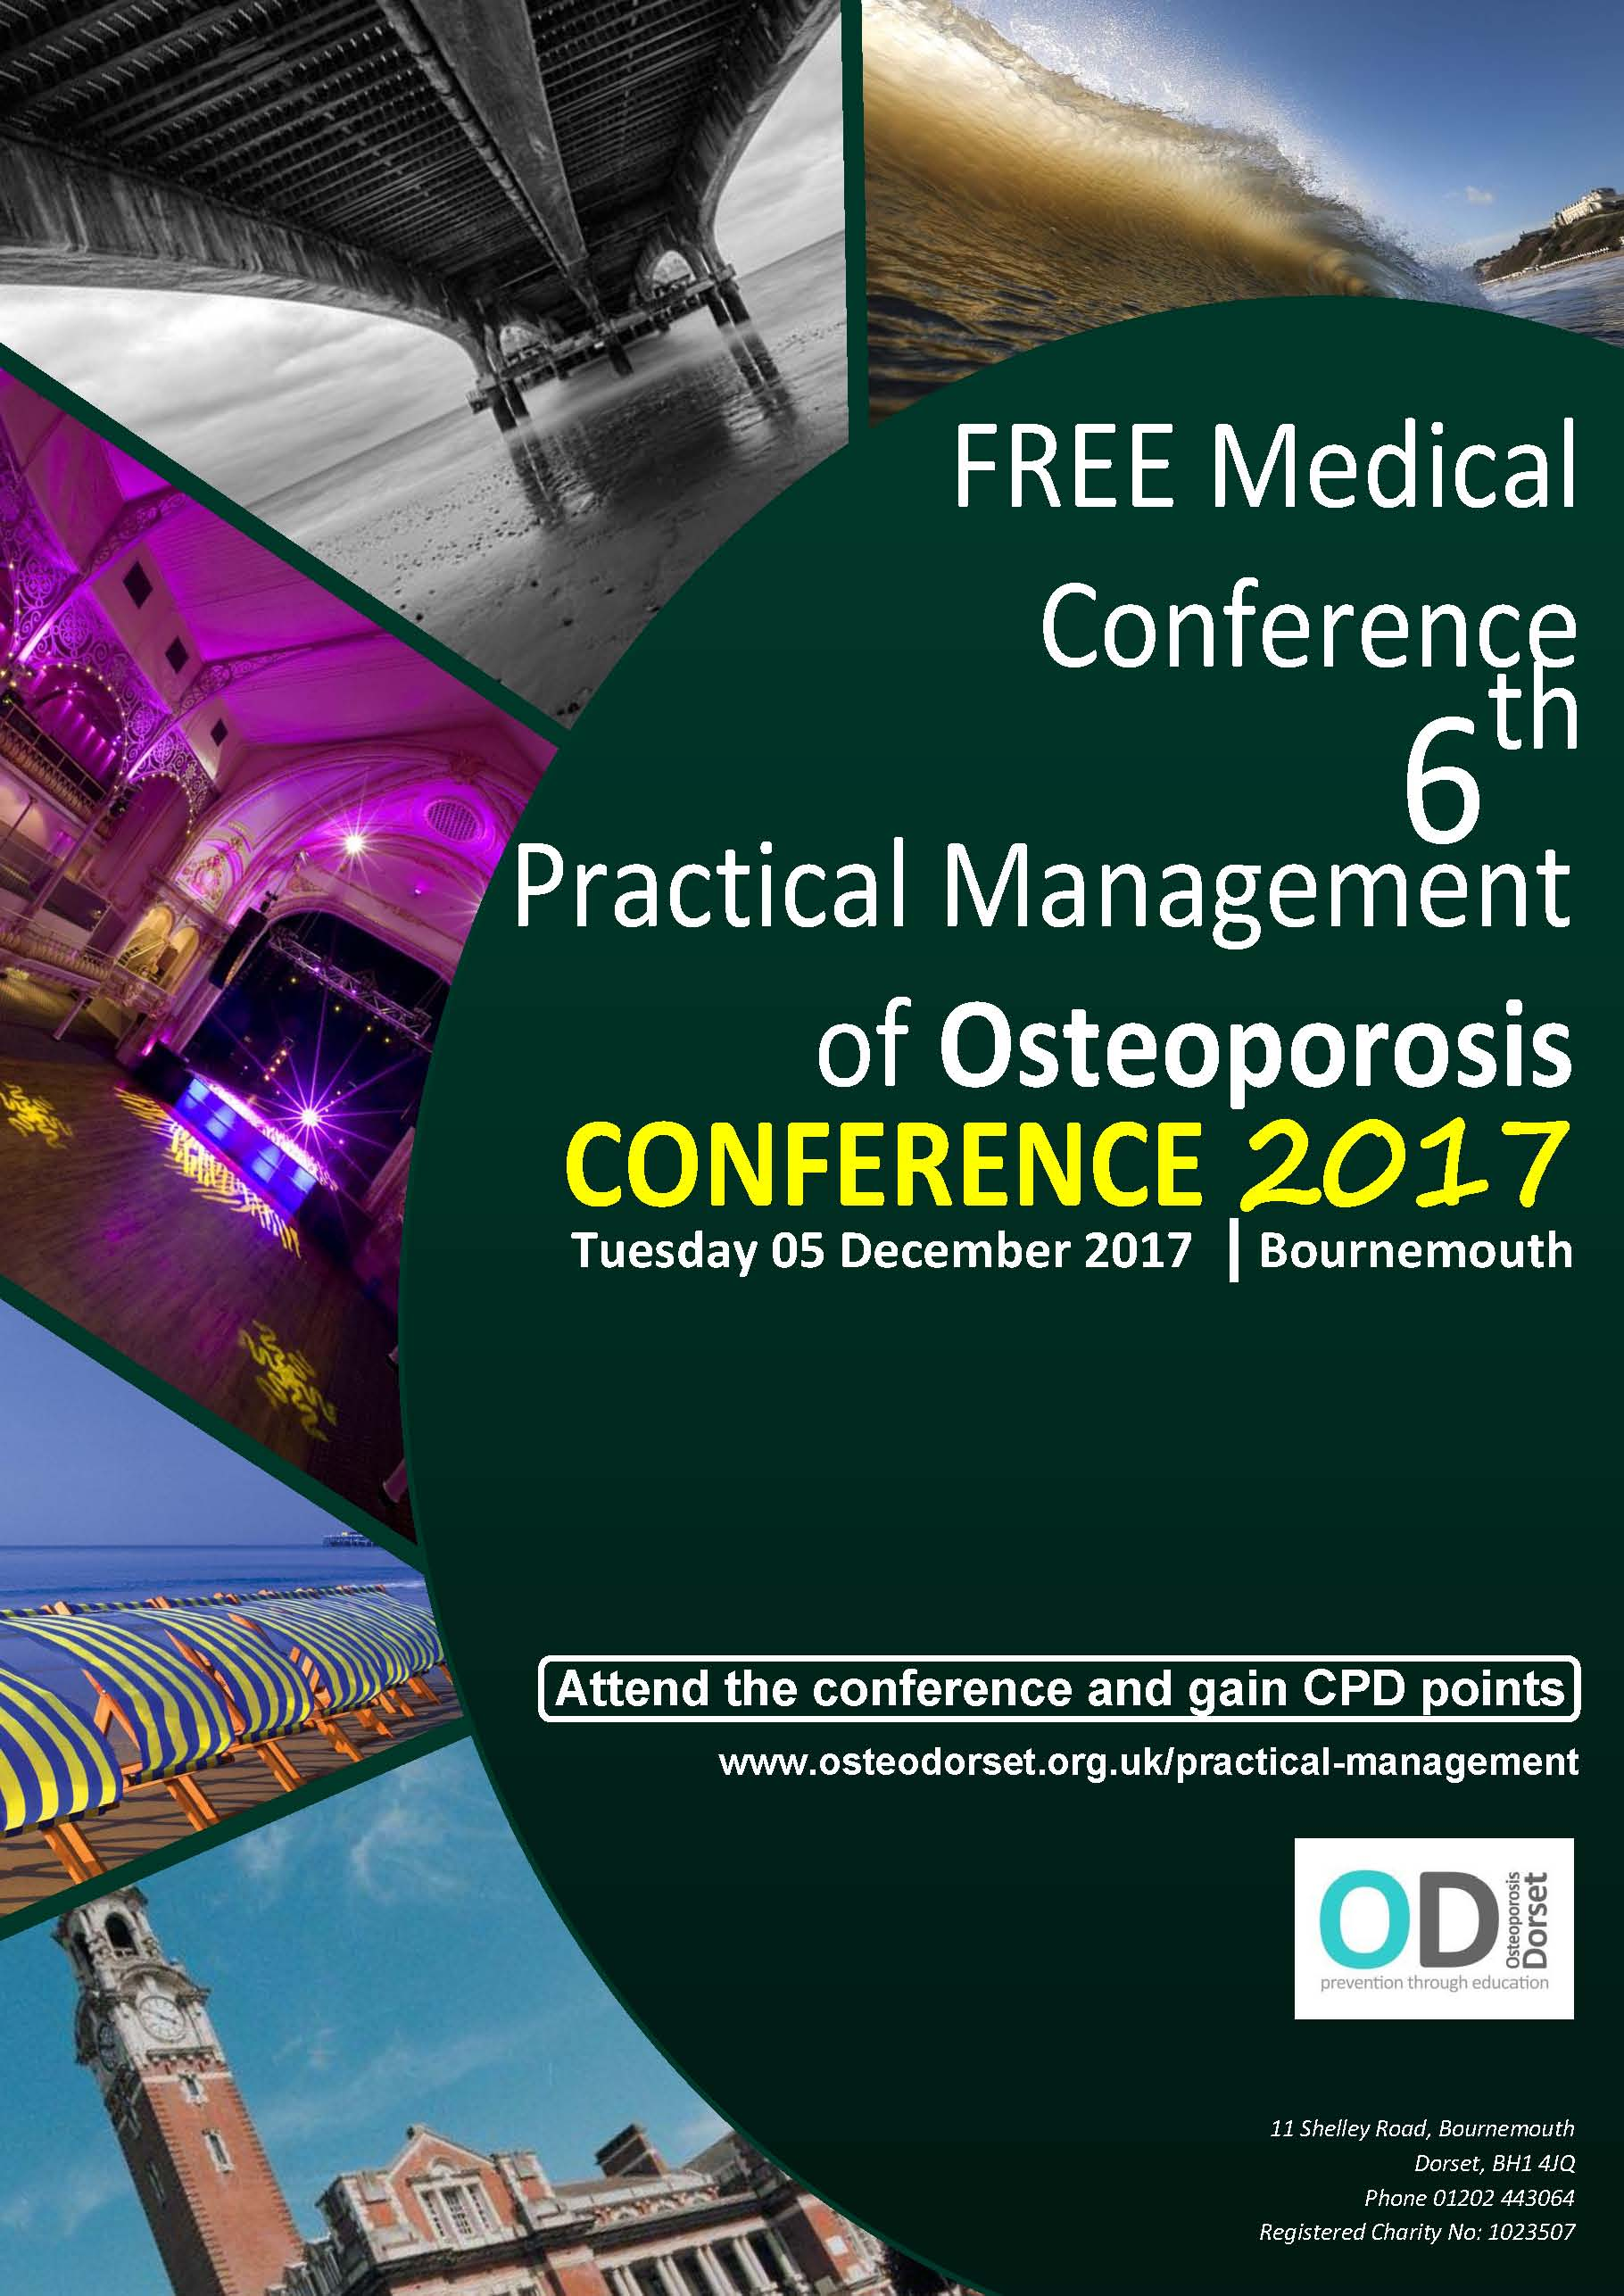 6th Practical Management of Osteoporosis Conference 2017 - Bournemouth_Page_1